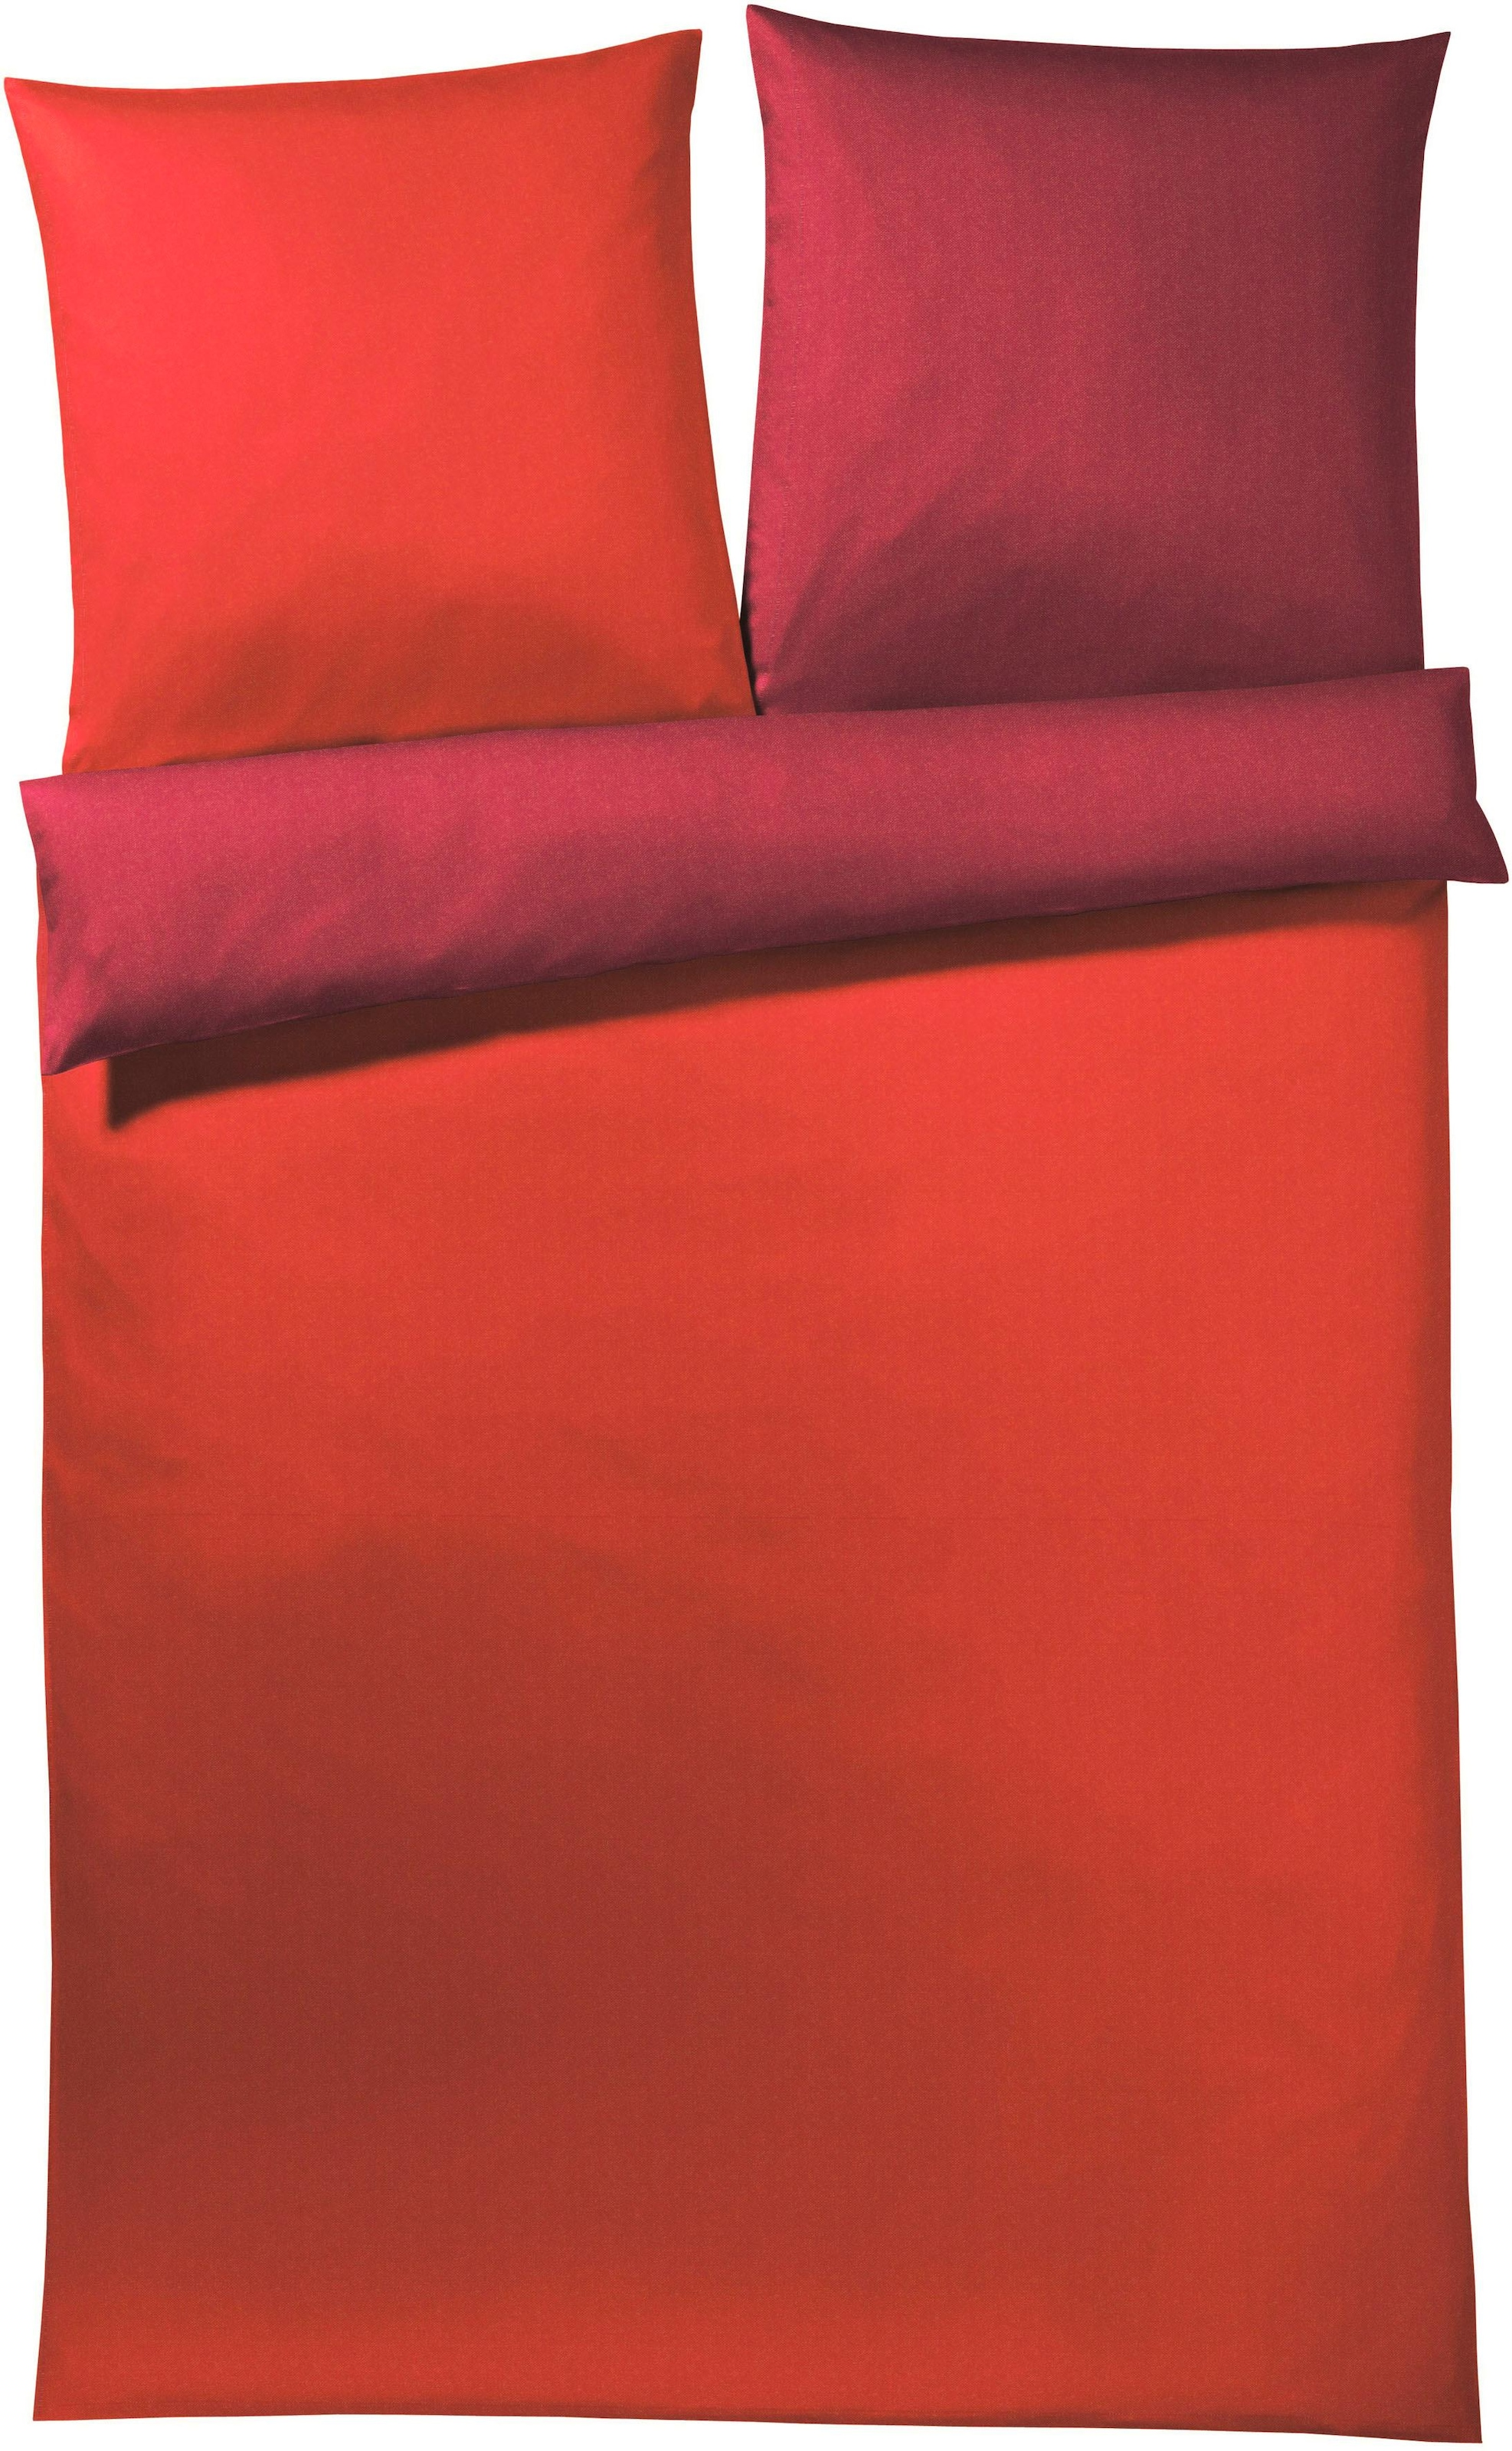 Bedding Vanezza Bettwäsche Lissa Mako Satin 100 Baumwolle Weiß Rot Orange Kisetsu System Co Jp